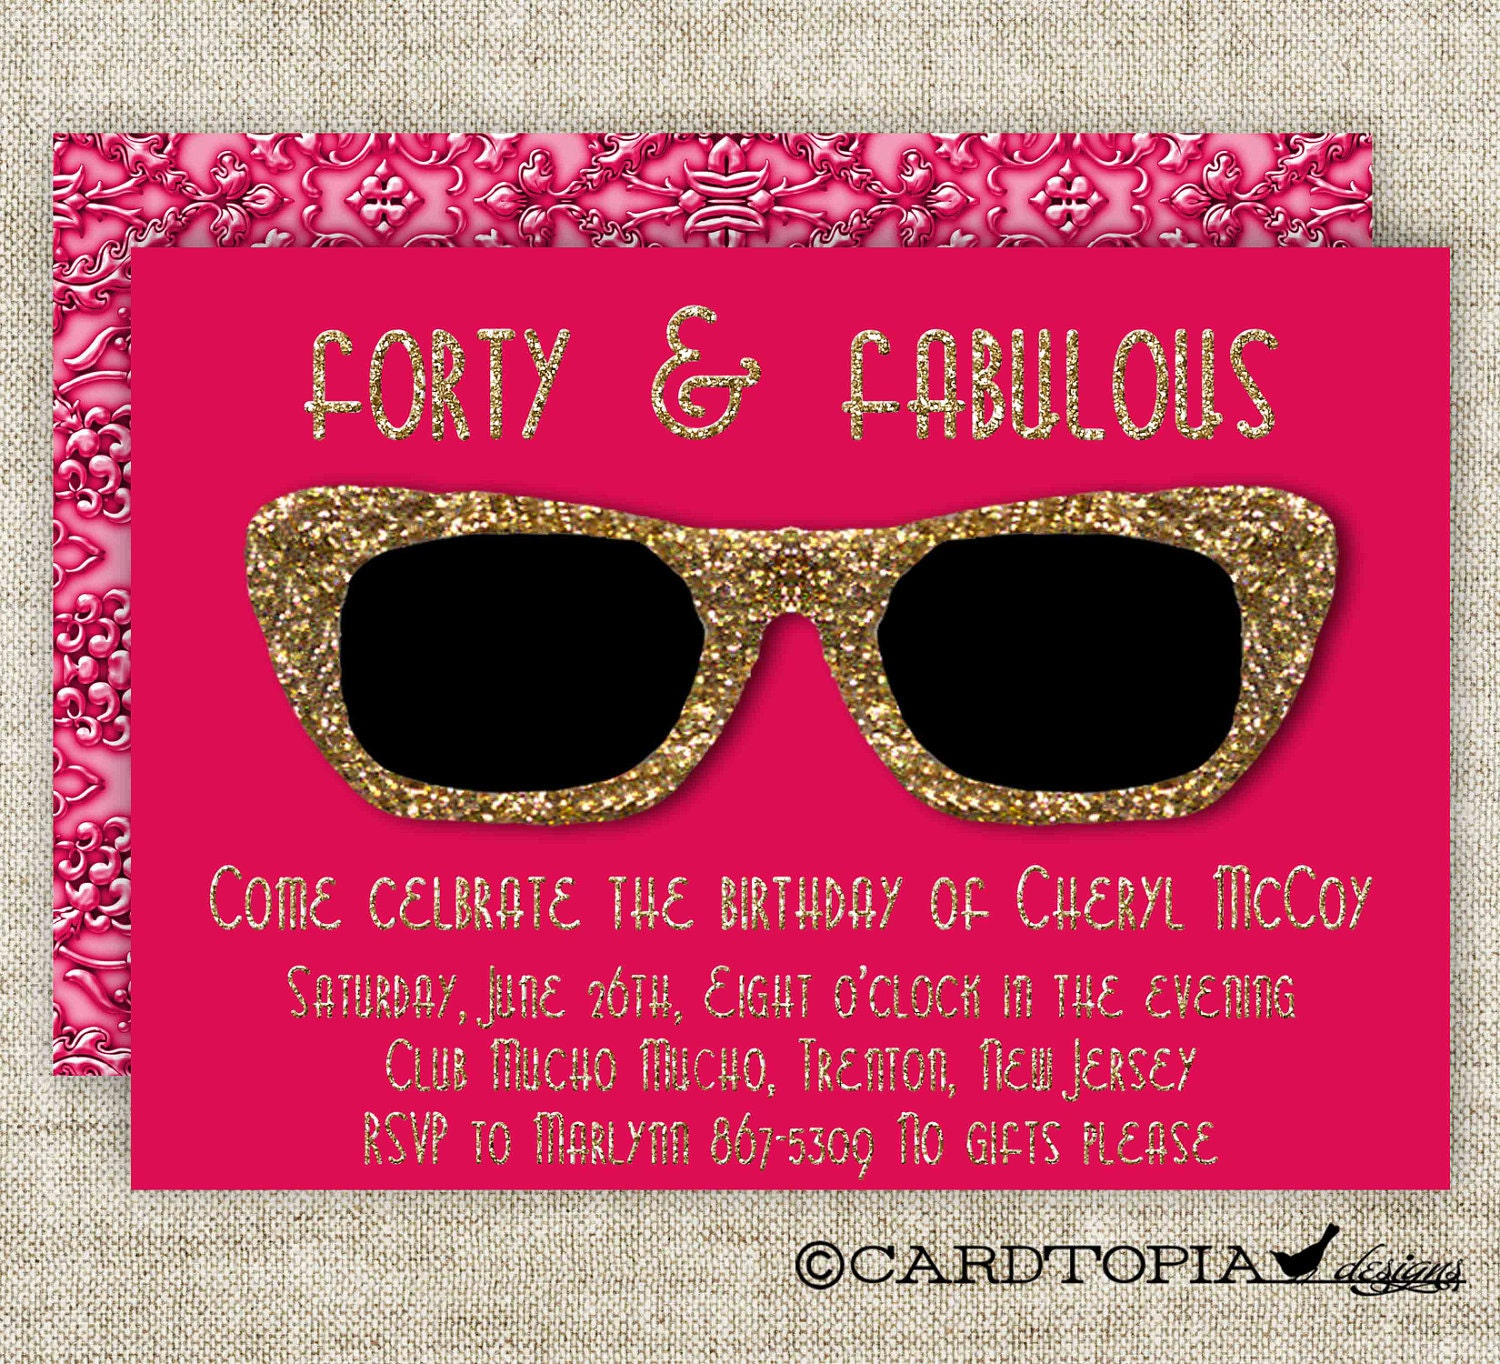 GOLDEN BIRTHDAY PARTY Invitations For Adult Woman Or Girl